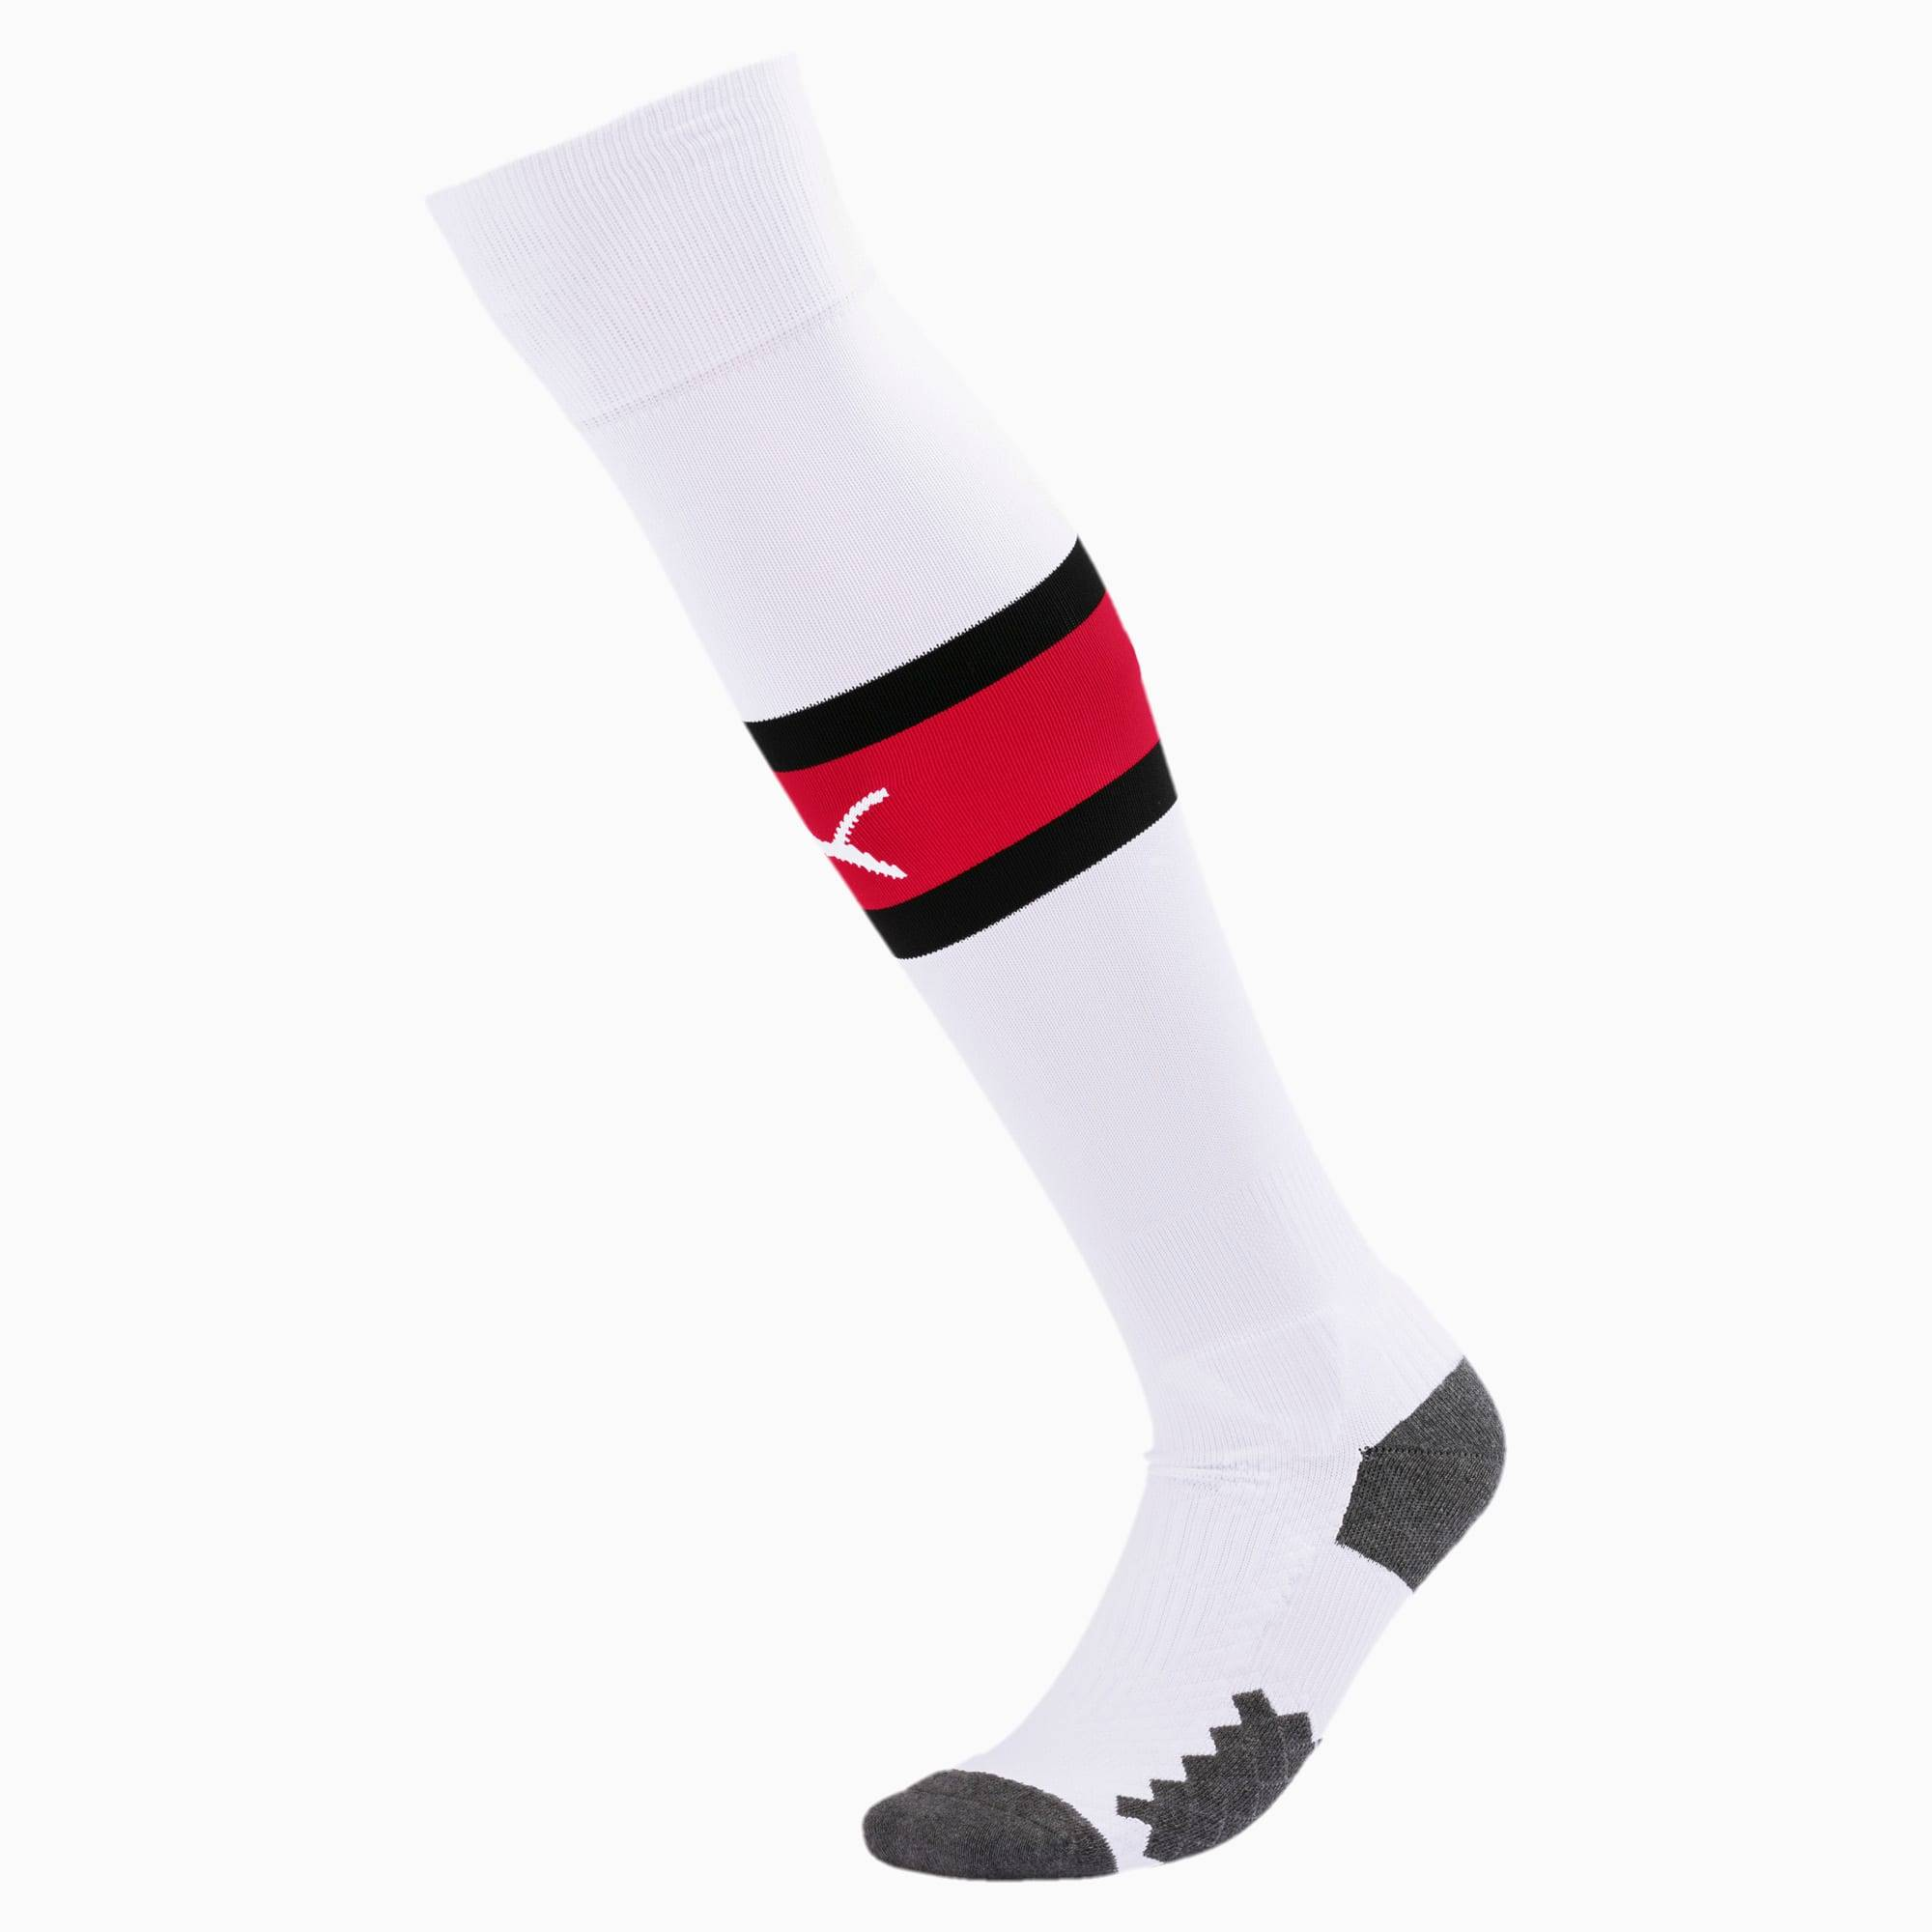 PUMA Chaussure Chaussettes AC Milan Band pour Homme, Blanc/Rouge, Taille 35-38, Chaussures